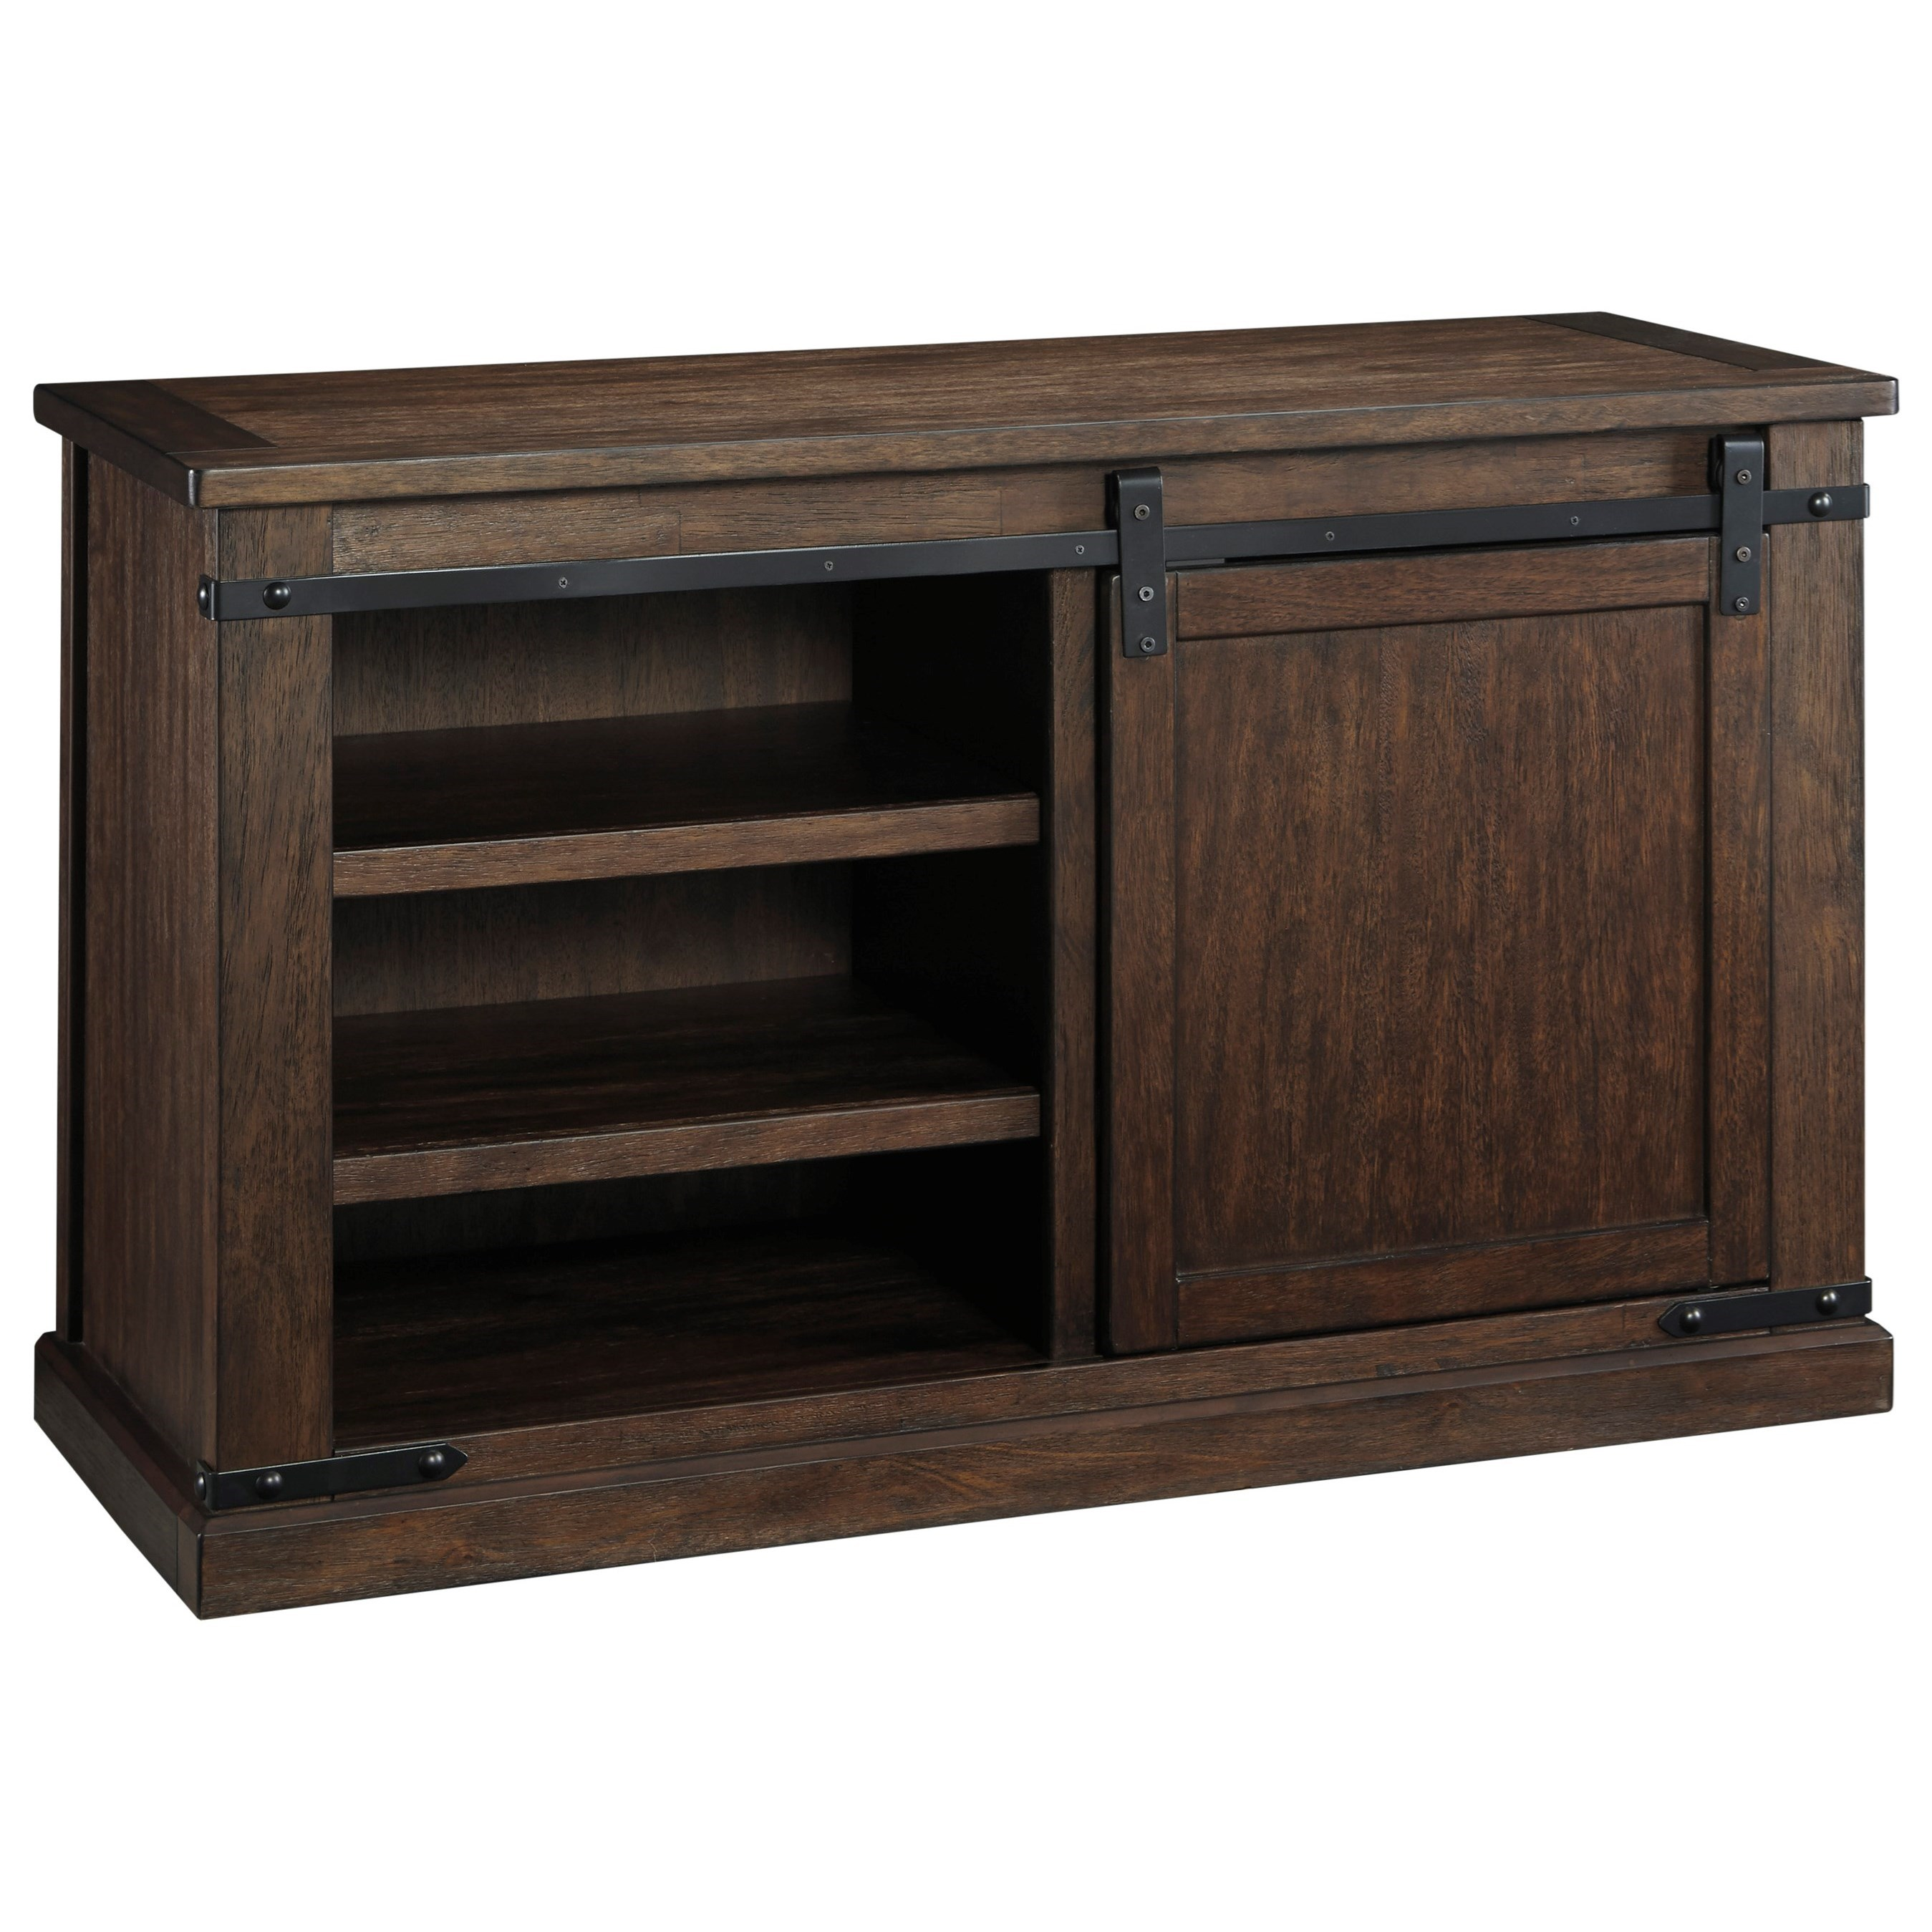 Budmore Medium TV Stand by Signature Design by Ashley at Beck's Furniture